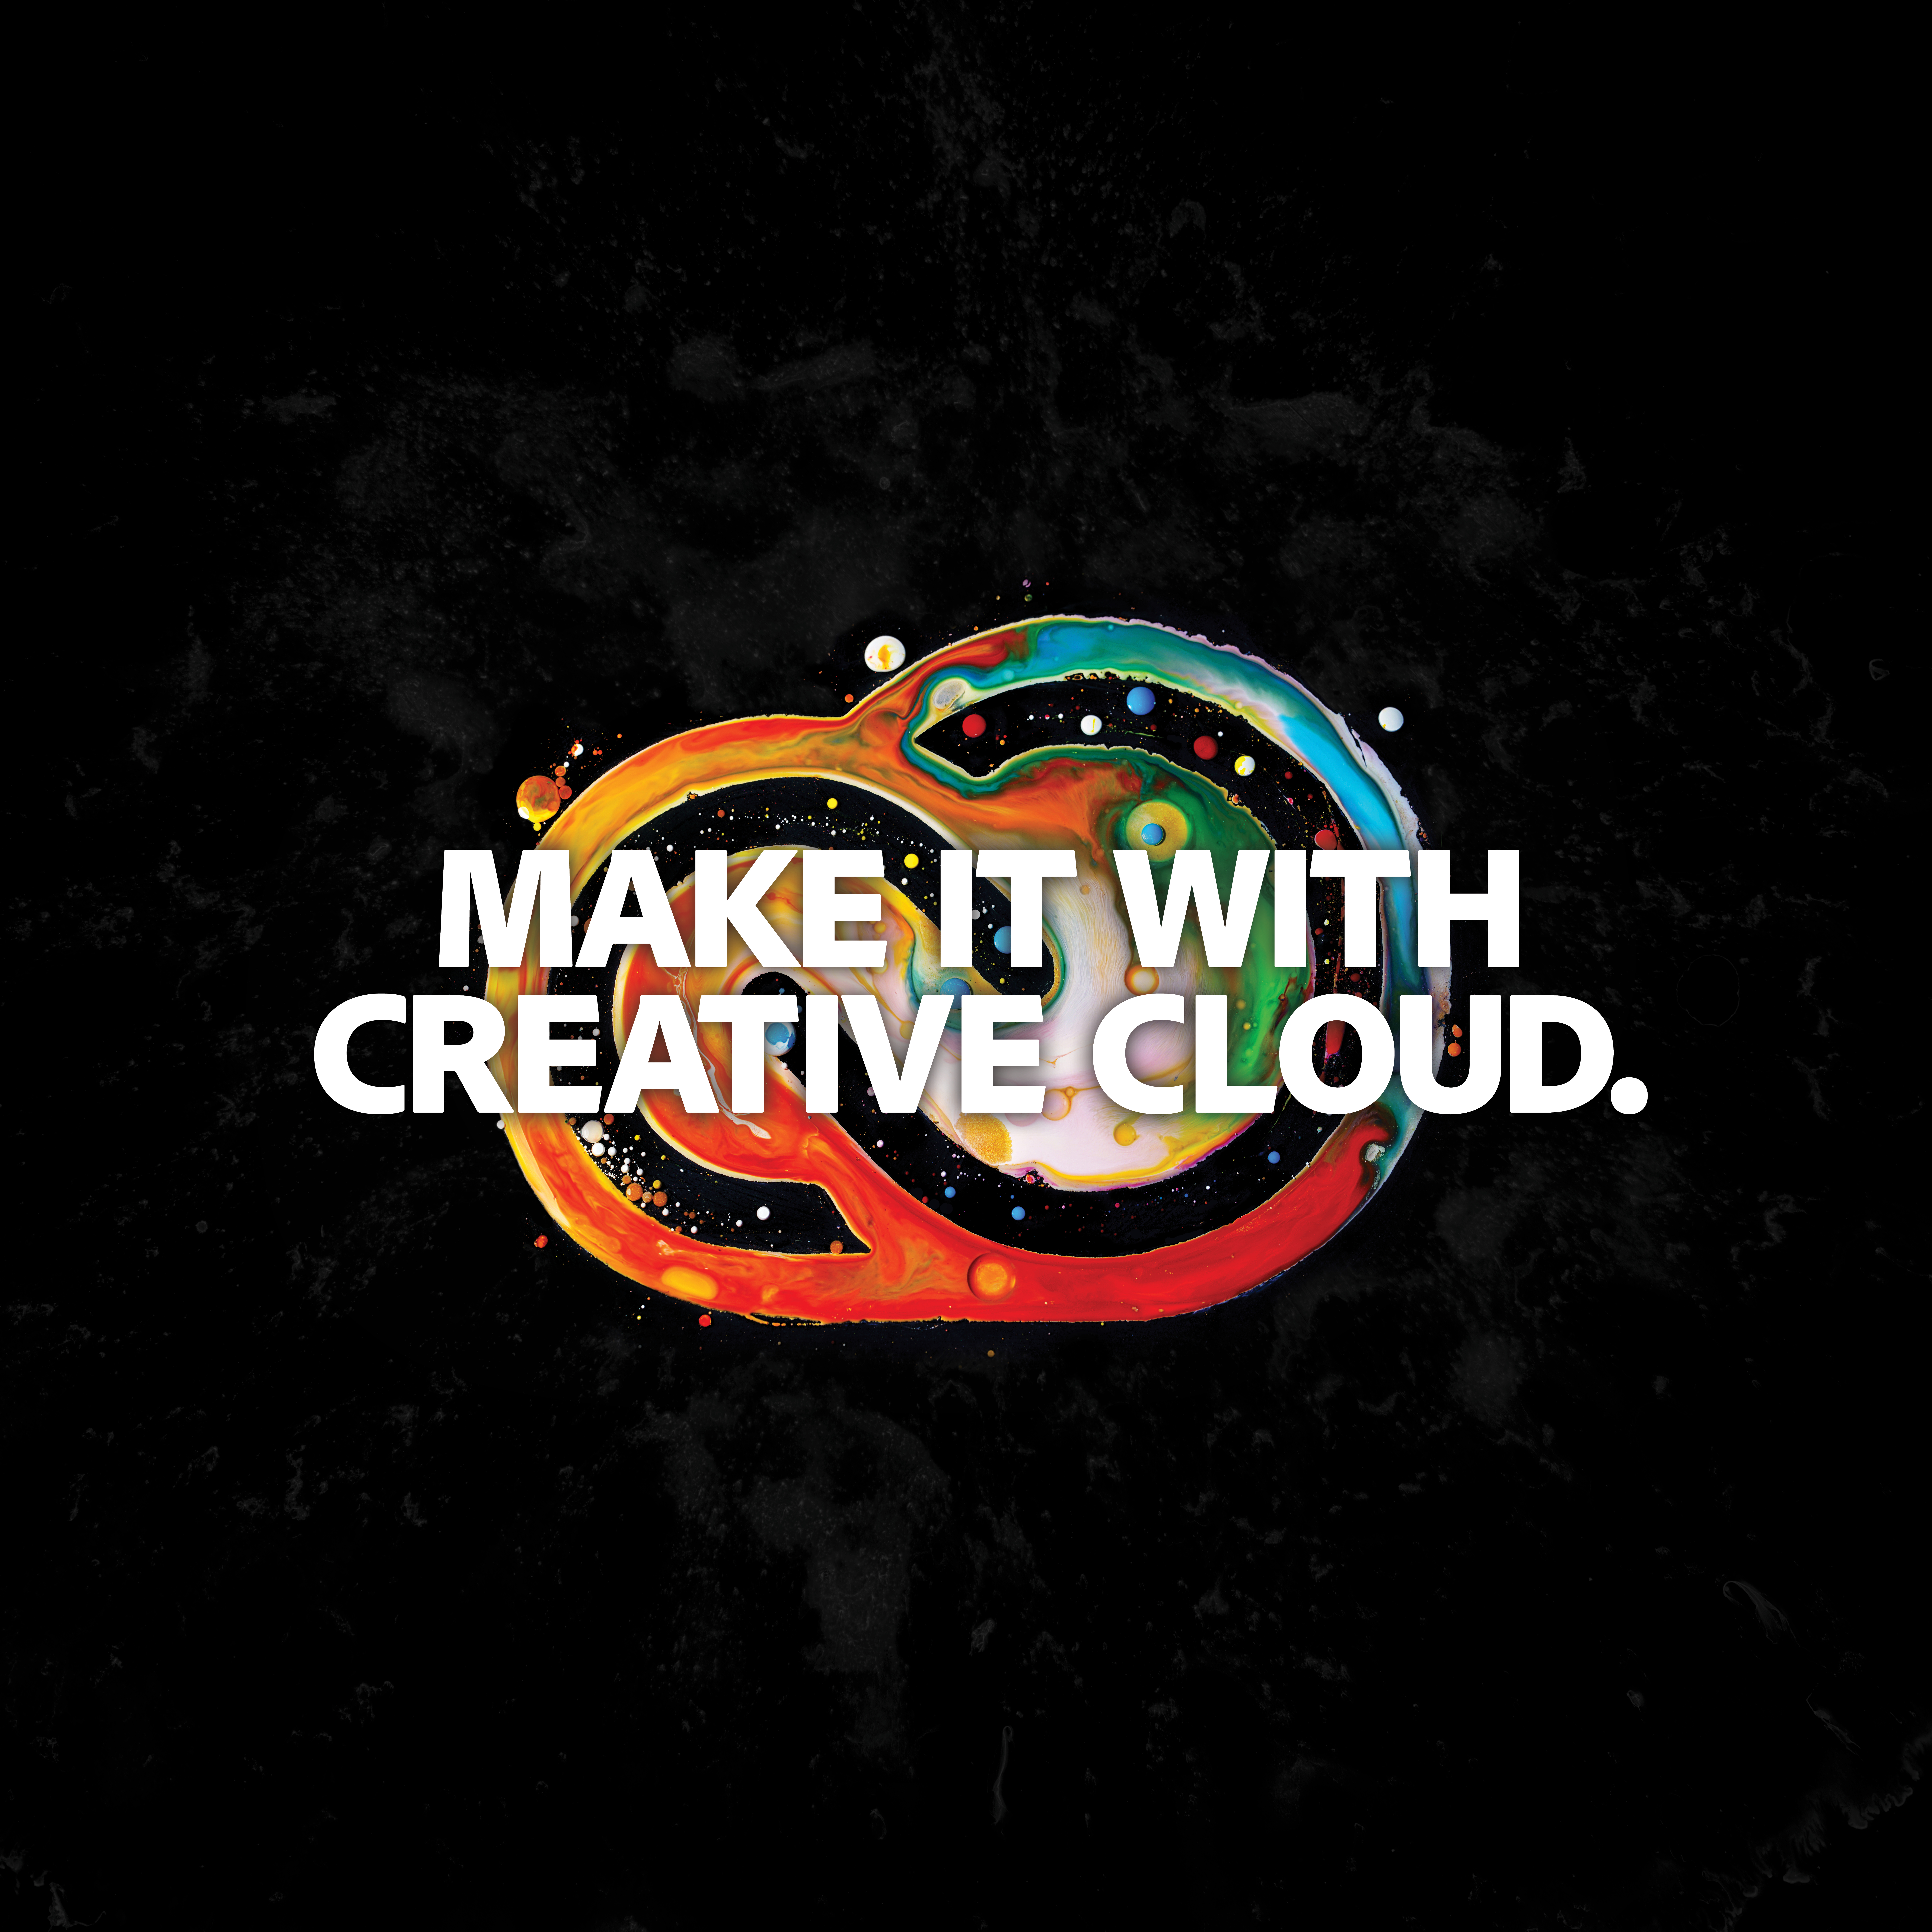 Adobe Creative Cloud Drippy with Make It text